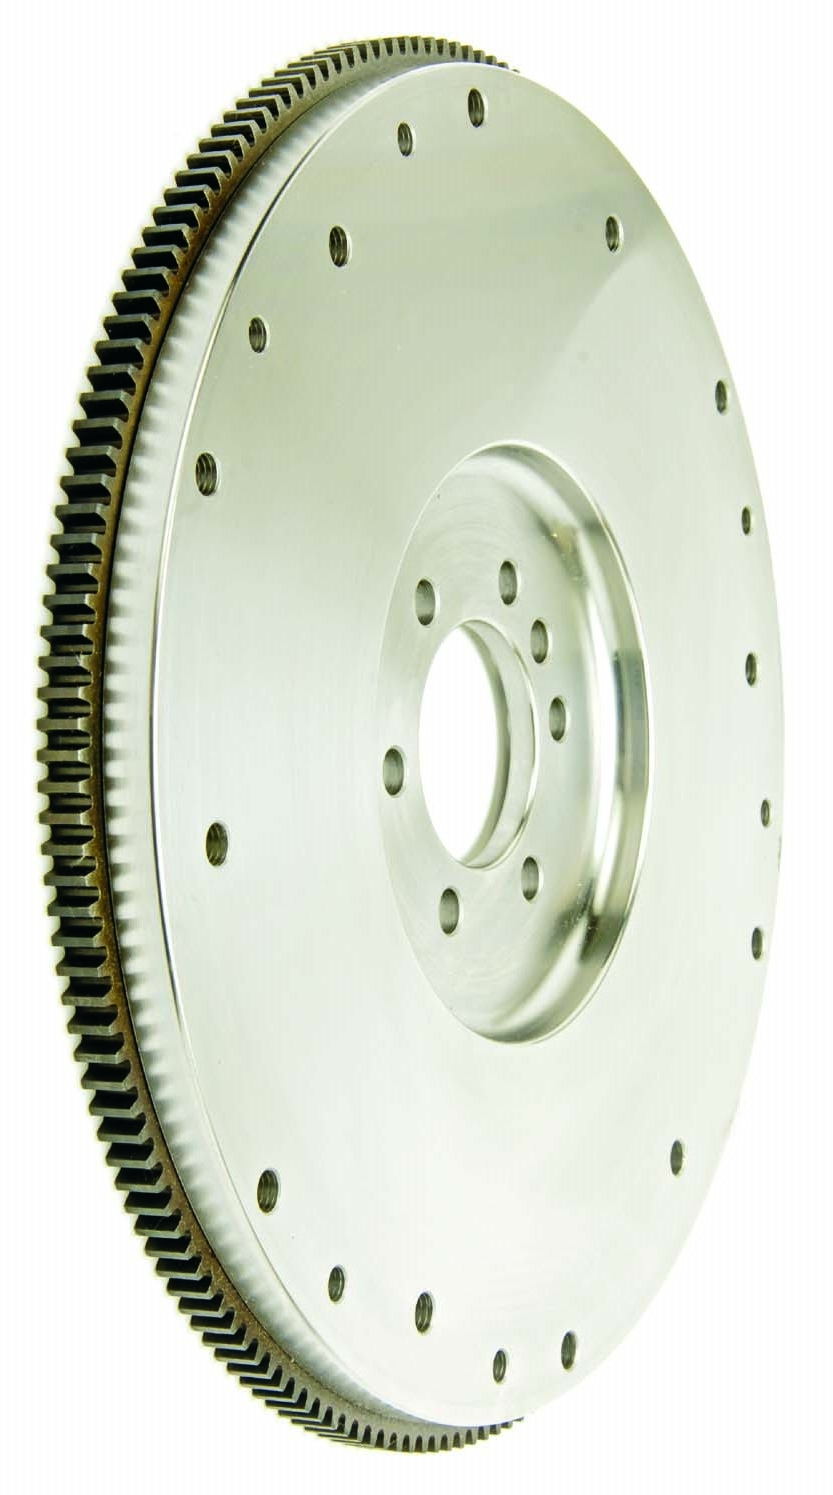 "LS1/LS2/LS3/LS6/LS7 McLeod Industries 12"" Steel Flywheel"